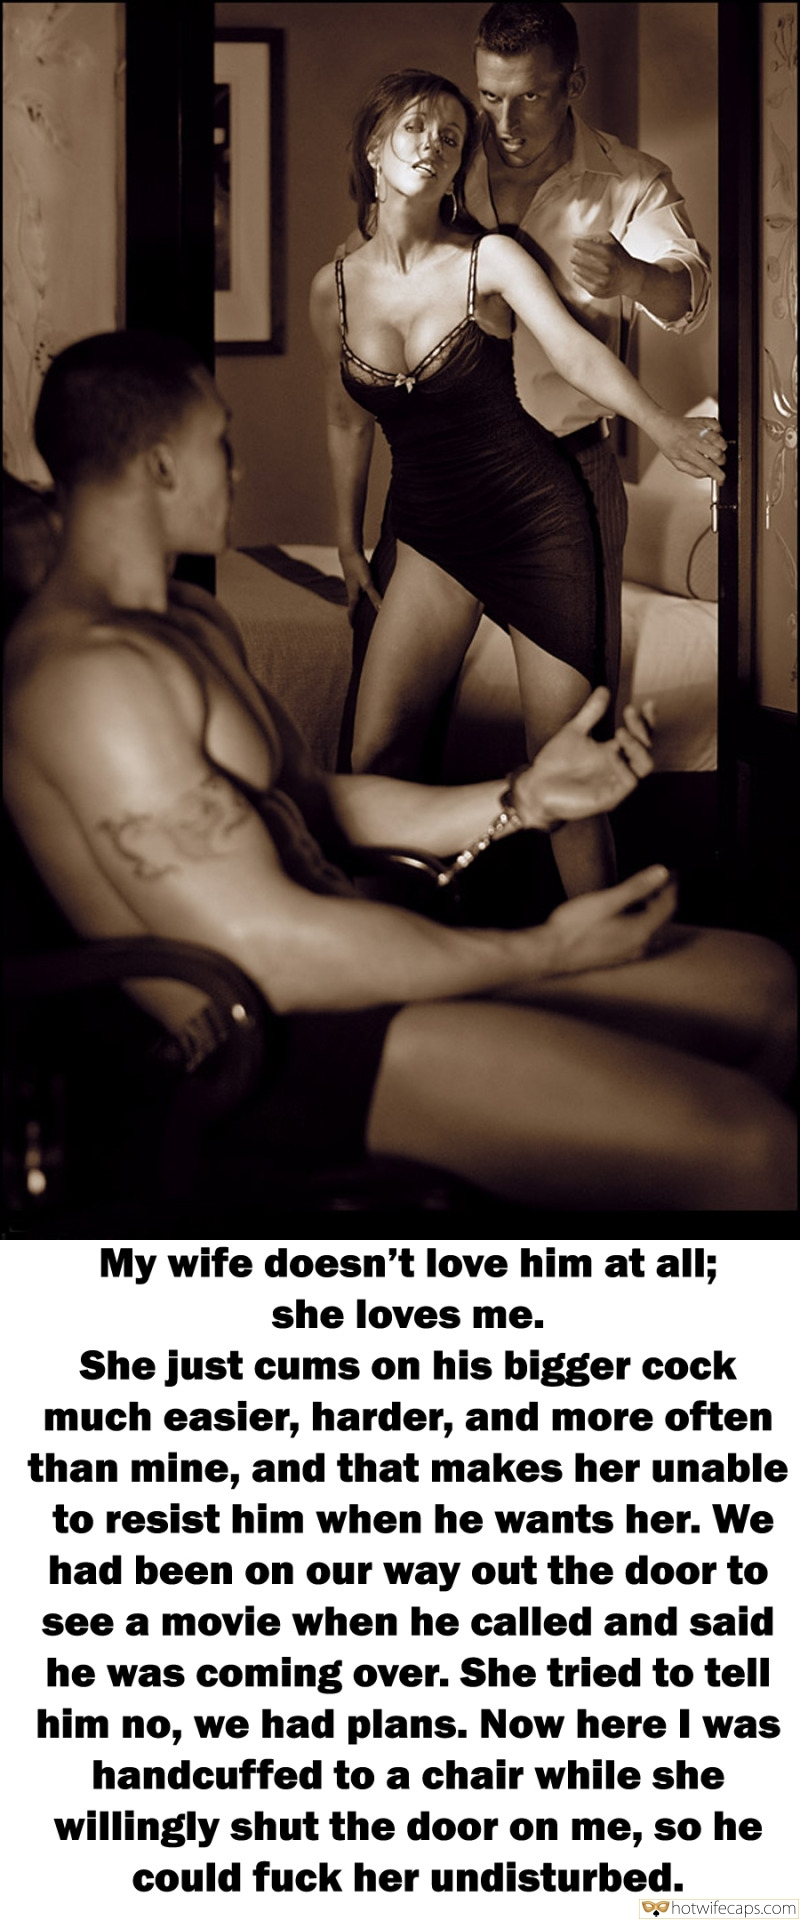 Bull Bigger Cock  hotwife caption: My wife doesn't love him at all; she loves me. She just cums on his bigger cock much easier, harder, and more often than mine, and that makes her unable to resist him when he wants her. We had been...